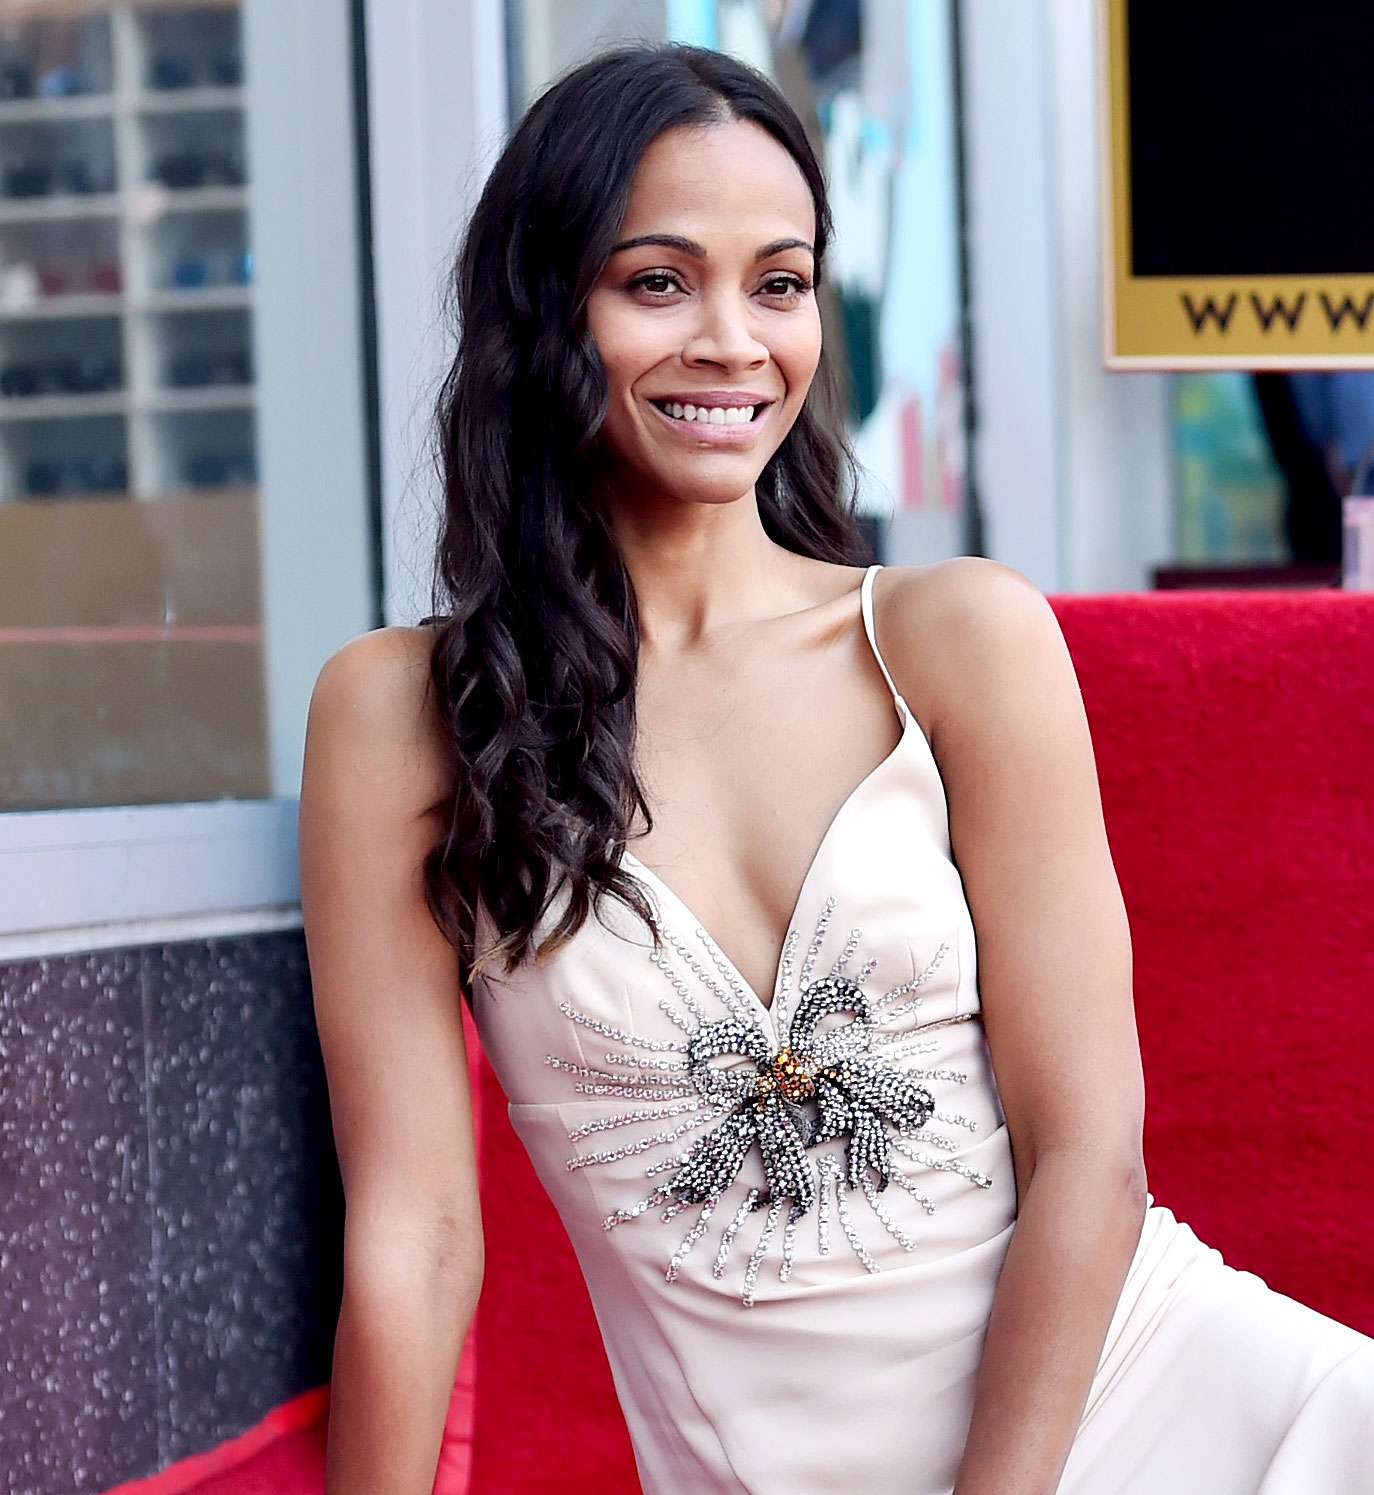 Stars' Hangover Cures - HOLLYWOOD, CA – MAY 03: Honoree Zoe Saldana at the Zoe Saldana Walk Of Fame Star Ceremony on May 3, 2018 in Hollywood, California. (Photo by Alberto E. Rodriguez/Getty Images for Disney)